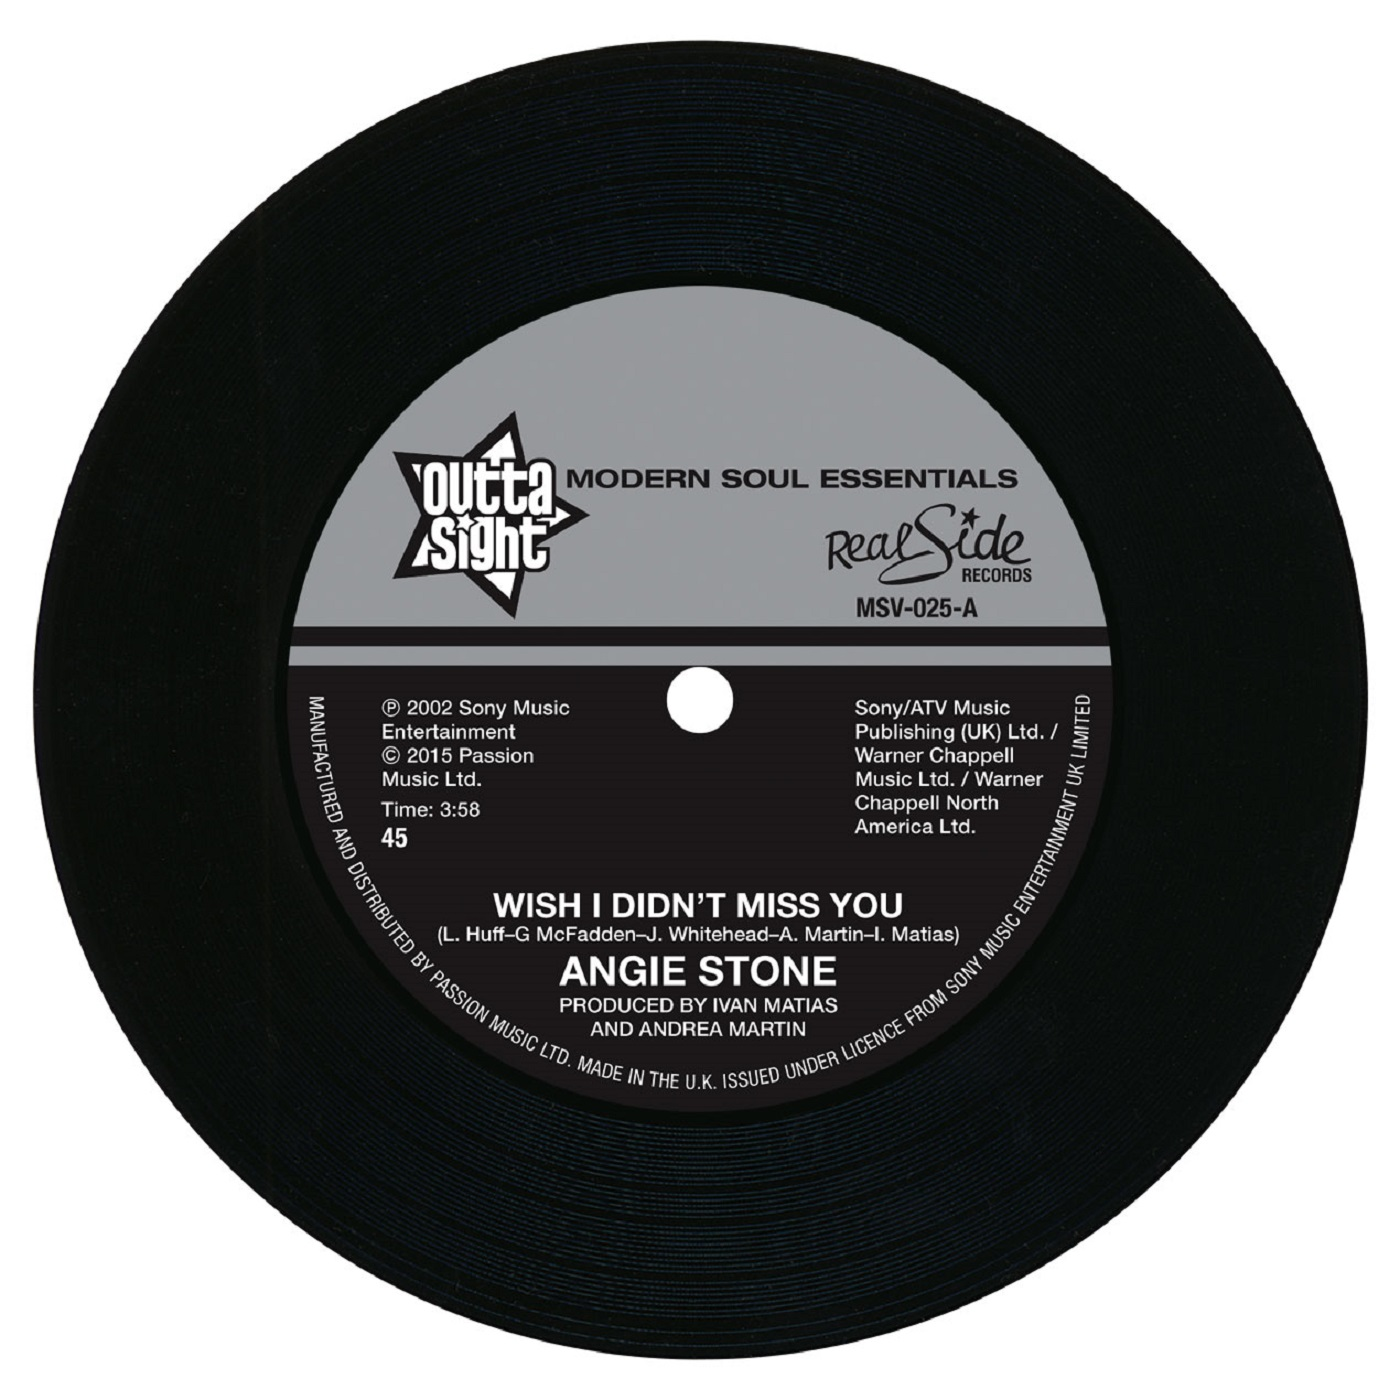 Angie Stone – Wish I Didn't Miss You / (Hex Hector Remix) 45 (Outta Sight) 7″ Vinyl